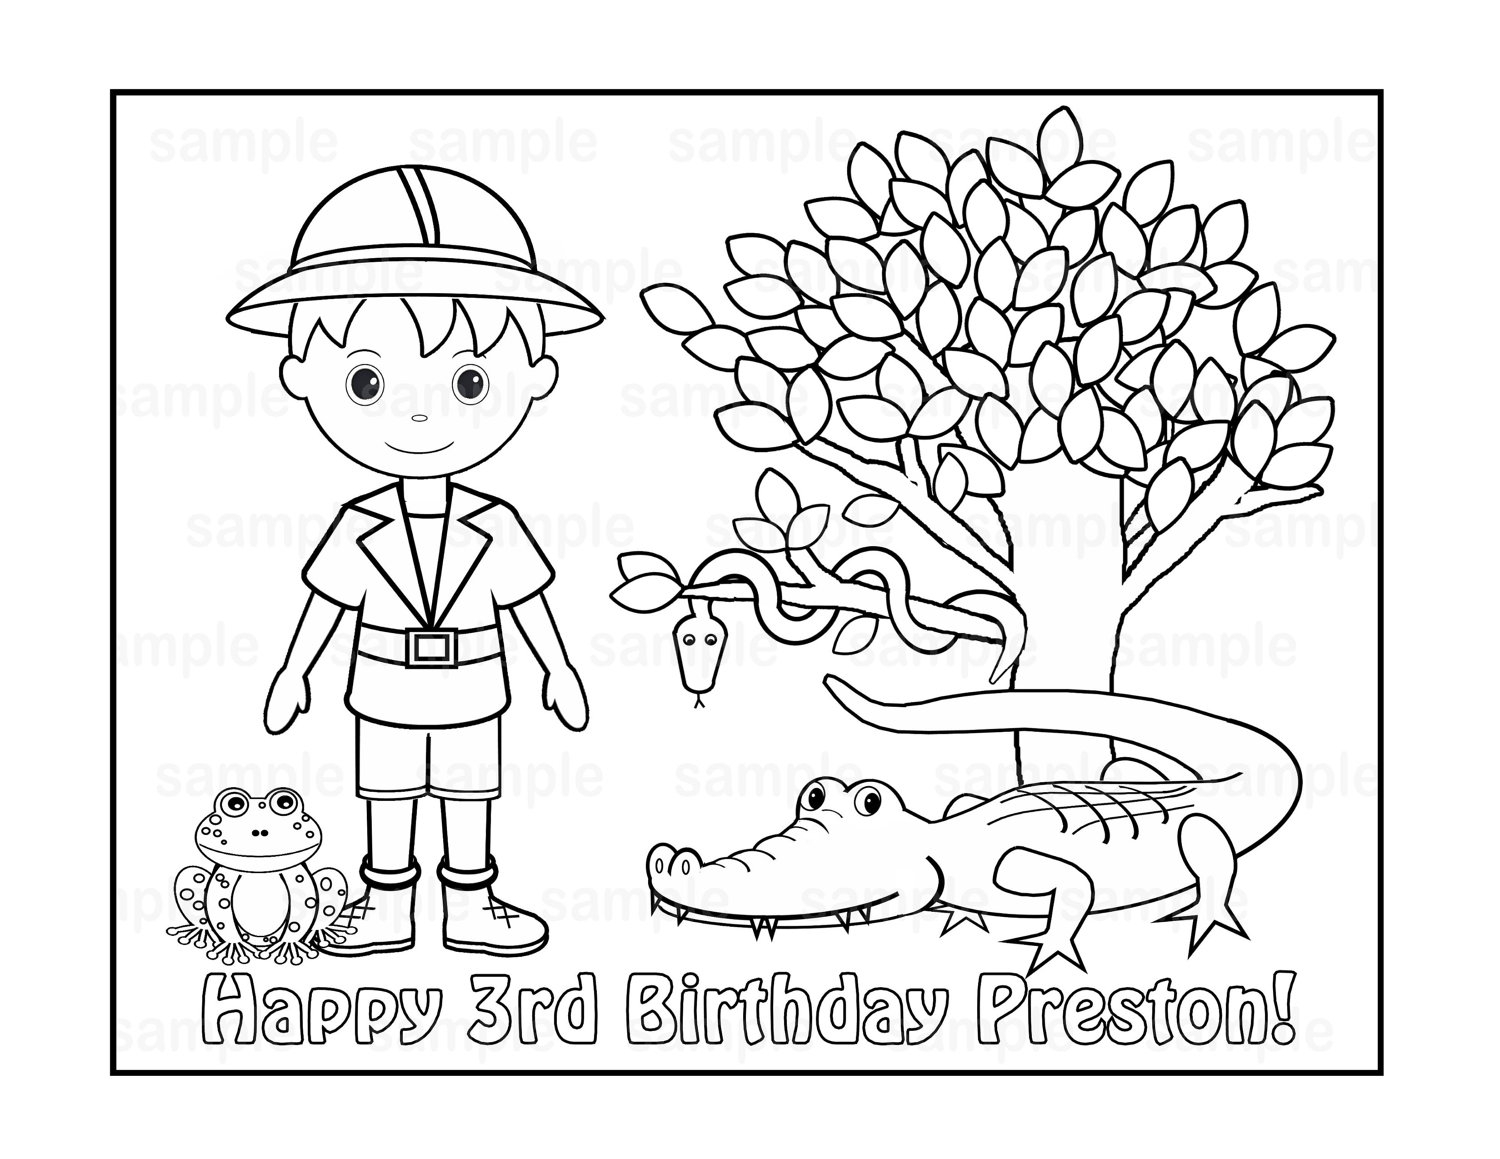 personalized birthday coloring pages | Personalized Birthday Coloring Pages at GetColorings.com ...